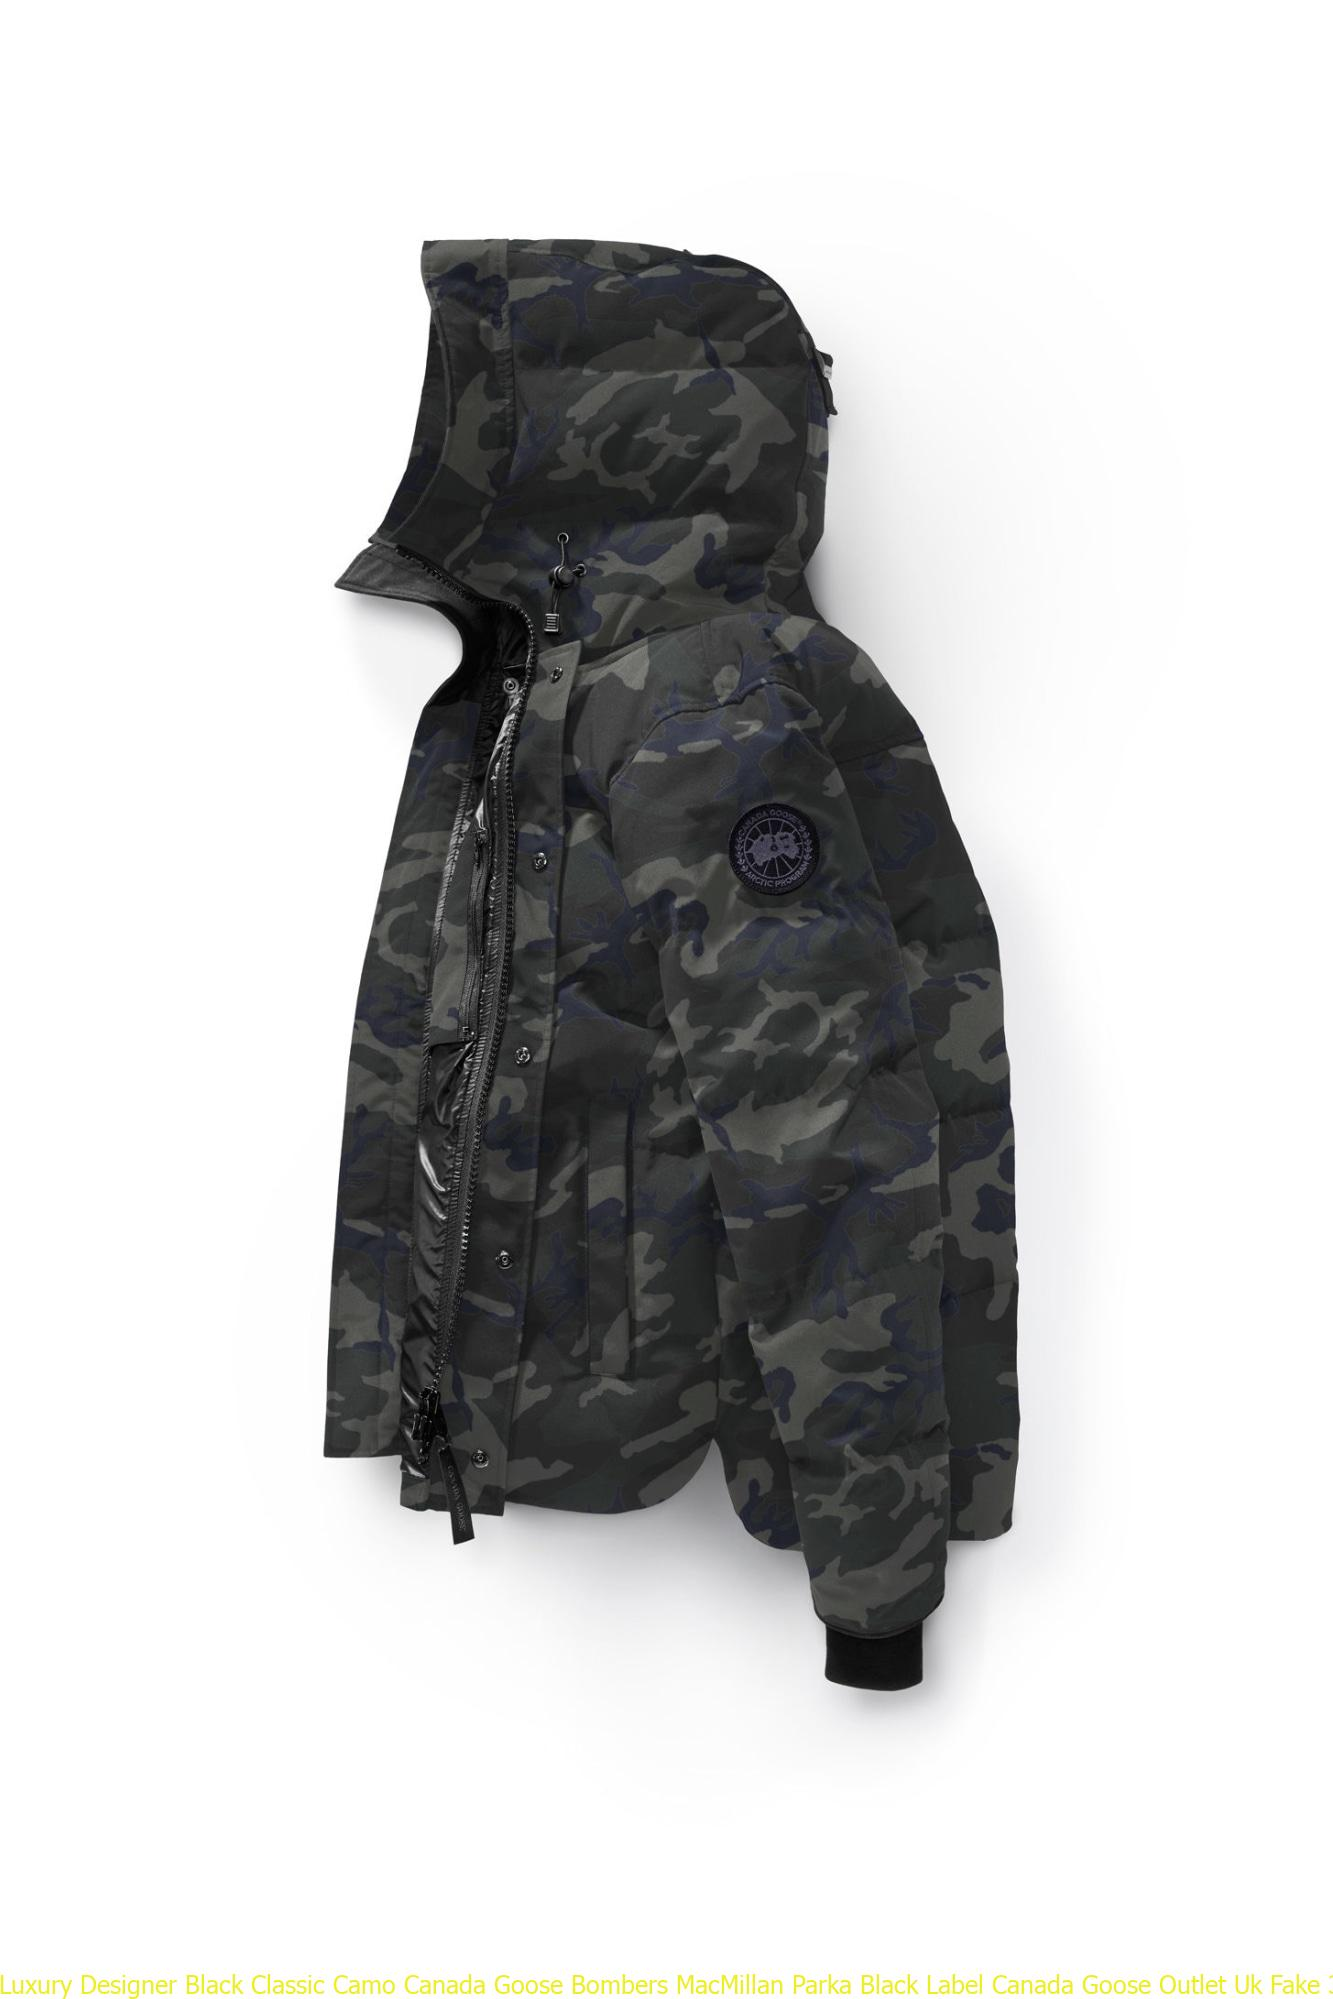 buy popular d7d40 e3268 Luxury Designer Black Classic Camo Canada Goose Bombers MacMillan Parka  Black Label Canada Goose Outlet Uk Fake 3804MB